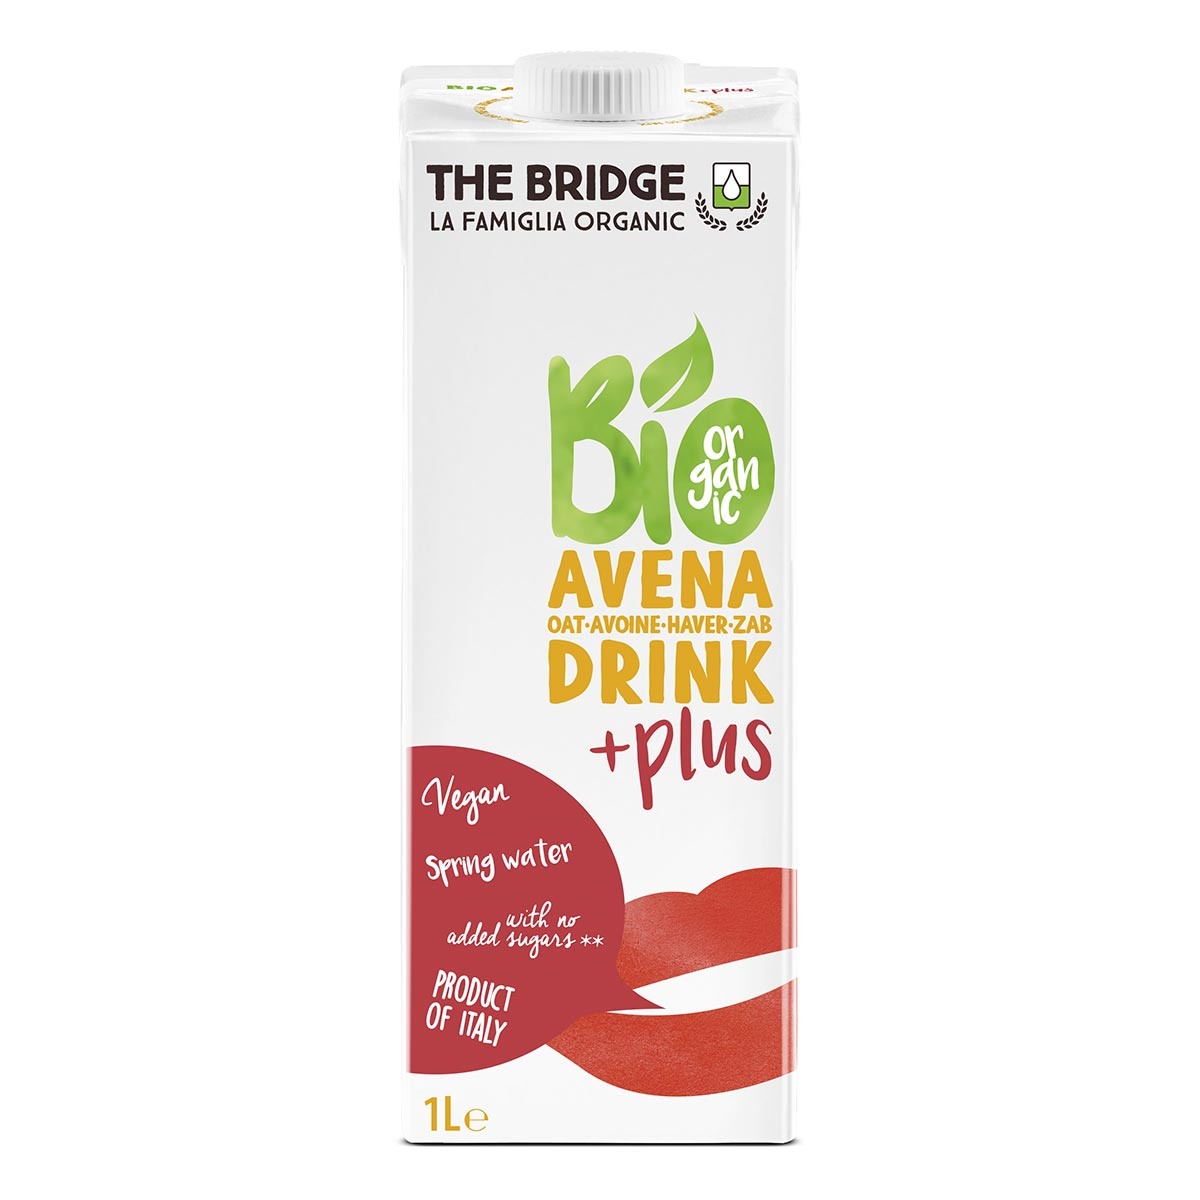 The Bridge - Boisson végétale avoine calcium - 1L